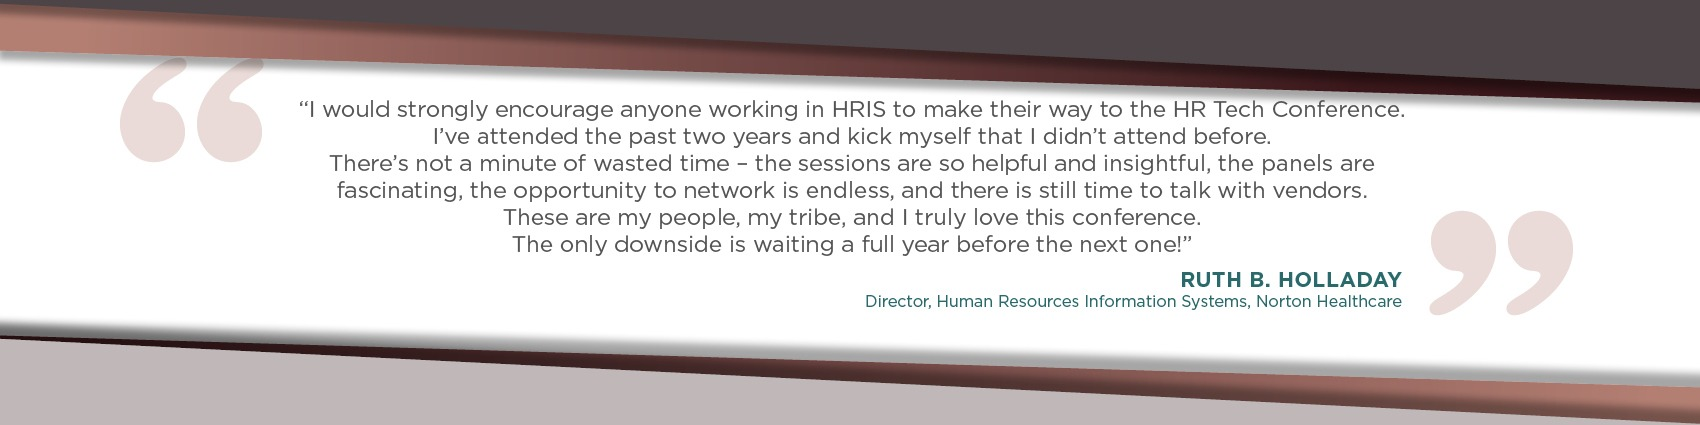 The HR Tech Conference opened my eyes to what systems are available to us that weren't even on our radar. -